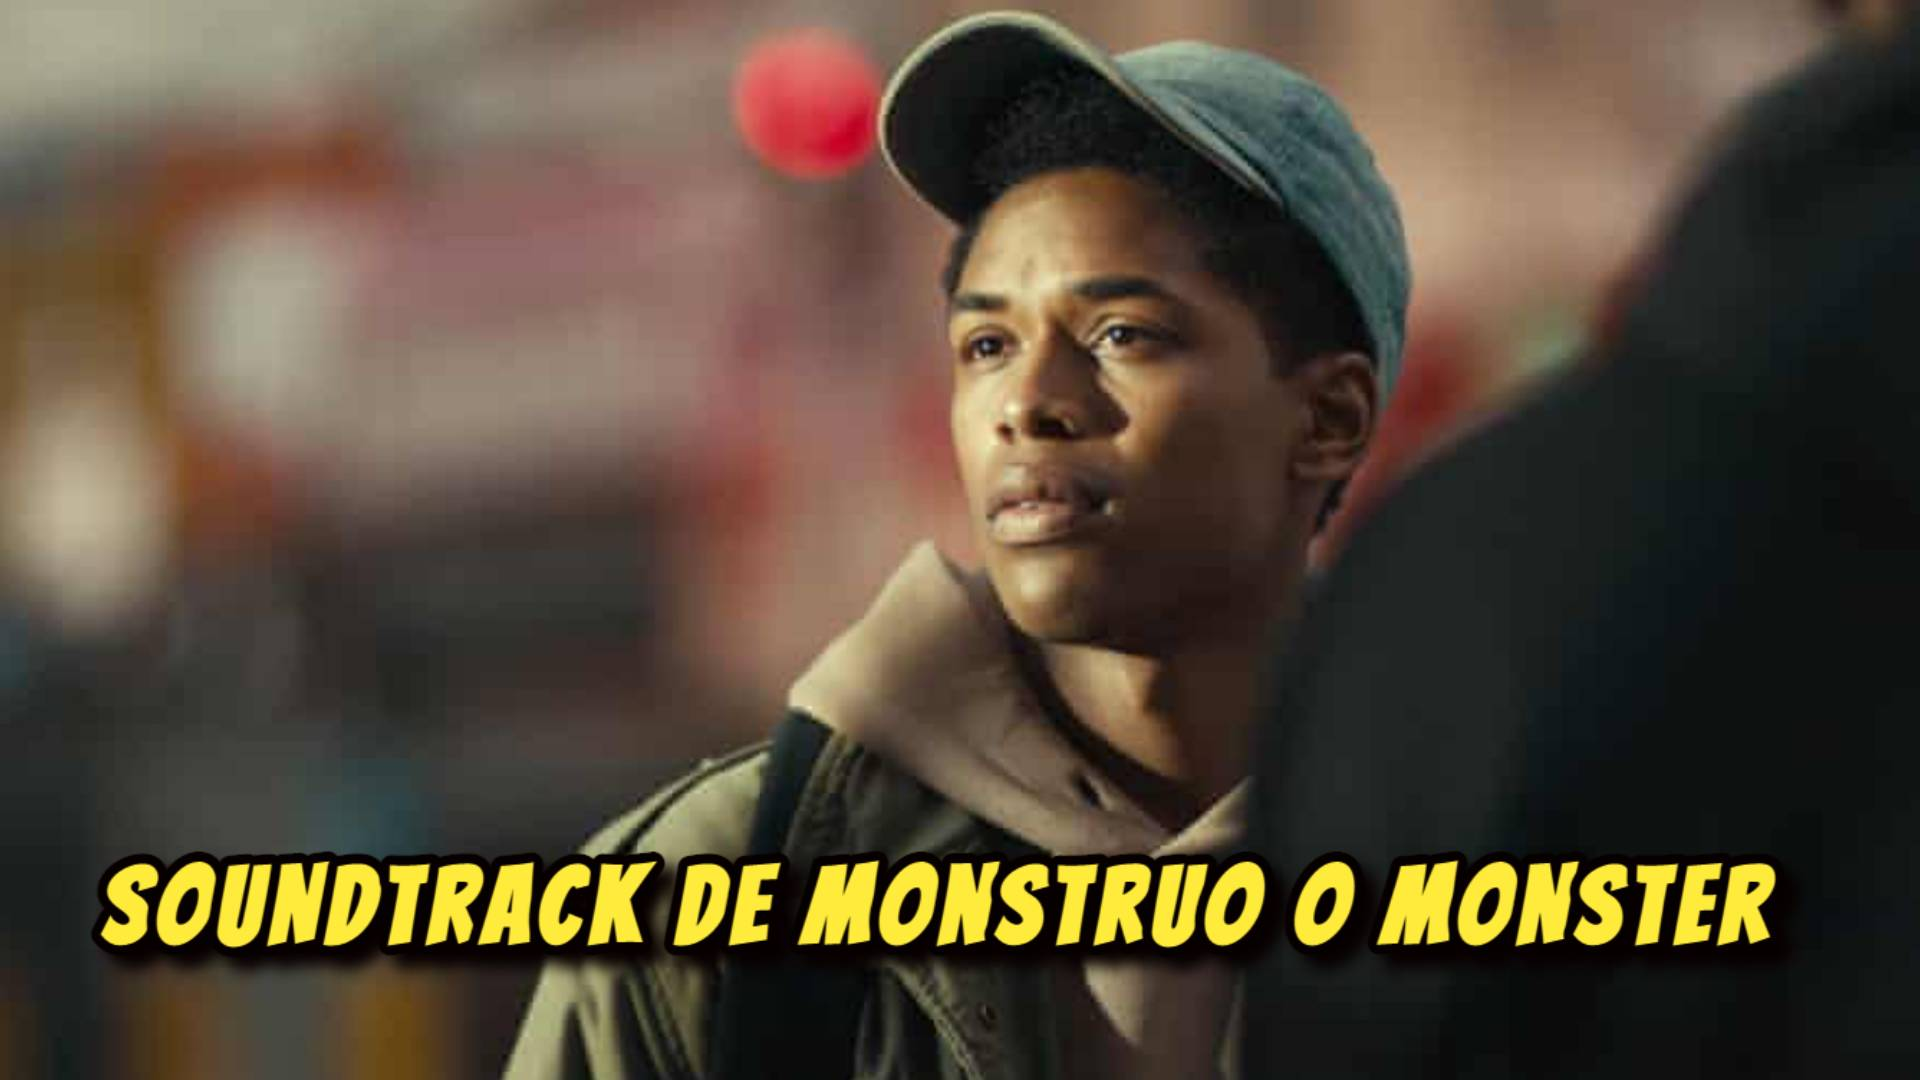 SOUNDTRACK de Monstruo o MONSTER